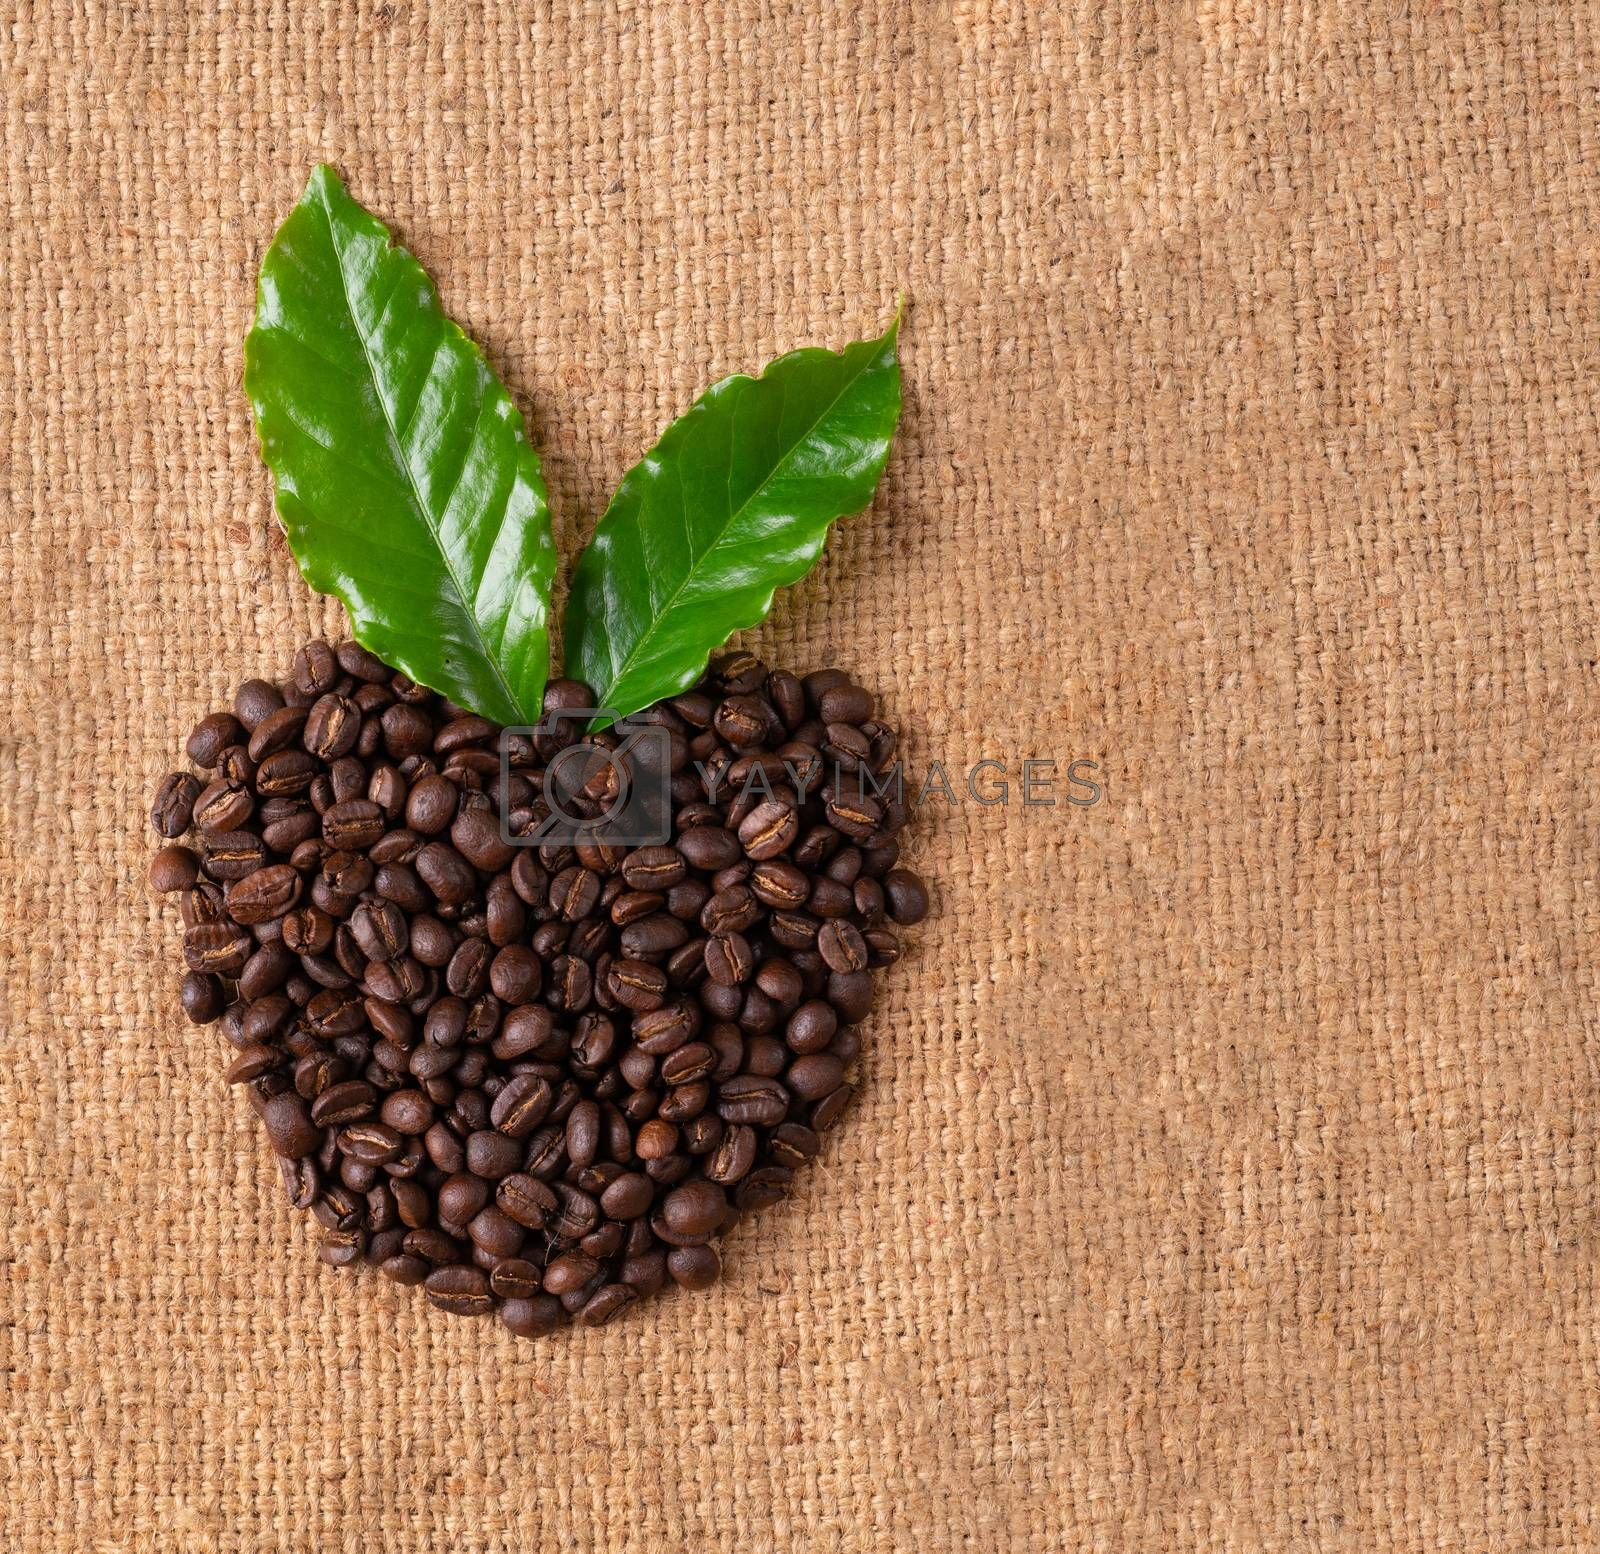 roasted coffee bean on linin sack by anankkml